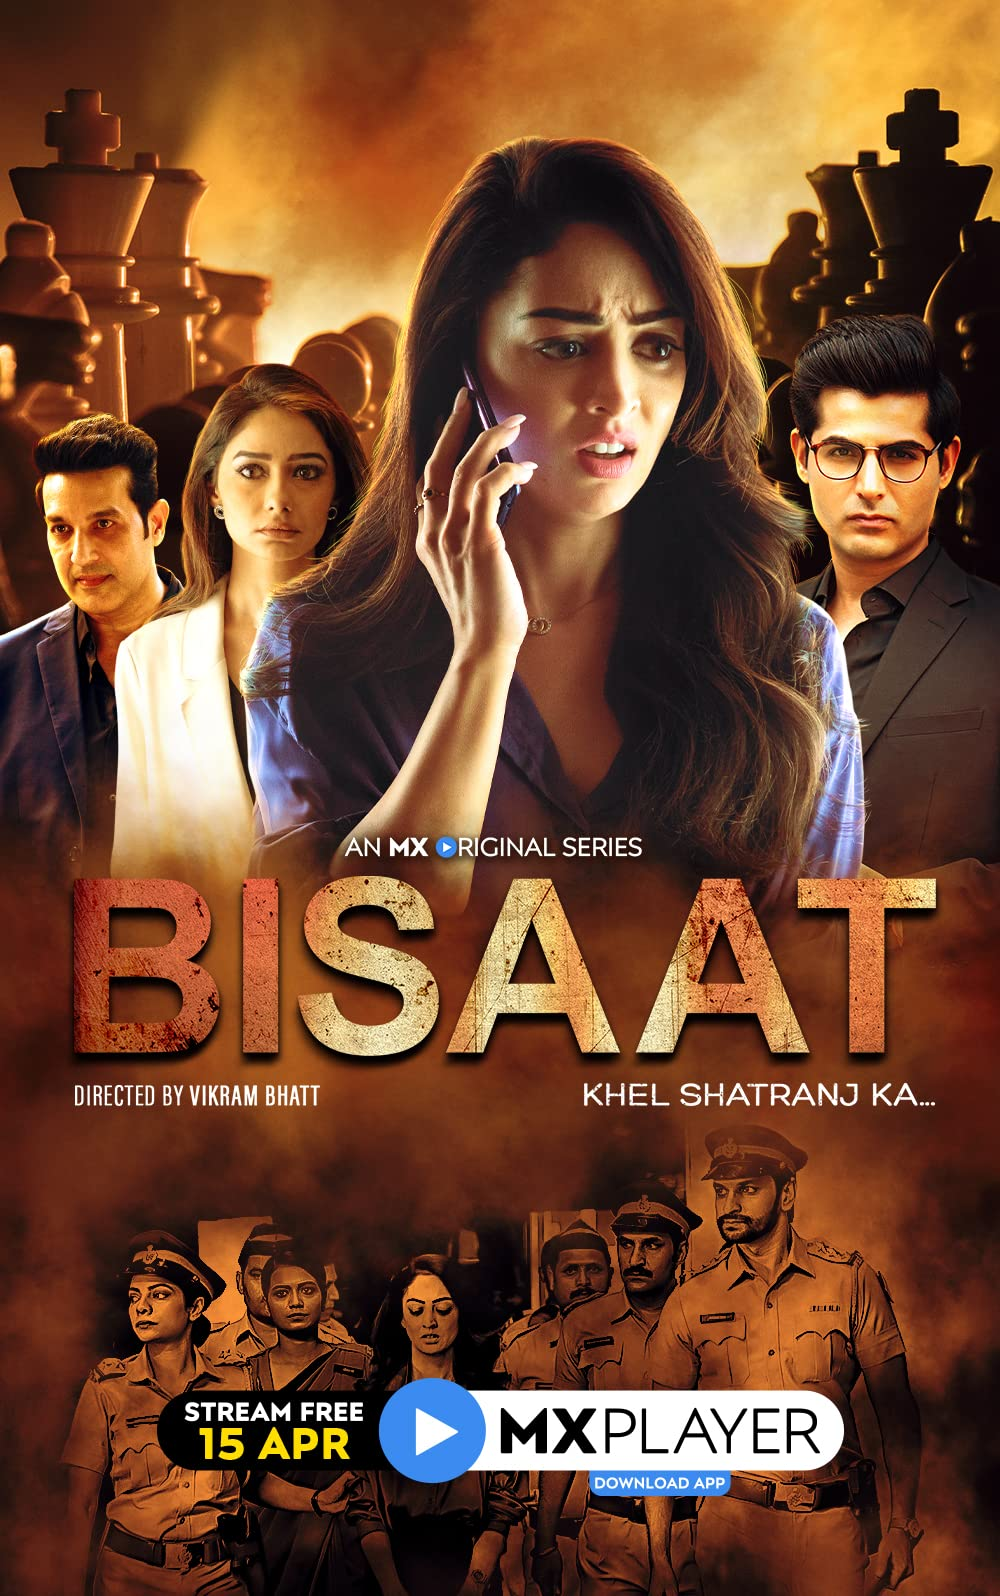 Download Bisaat: Khel Shatranj Ka 2021 S01 Hindi MX Original Complete Web Series 1080p HDRip 3.3GB